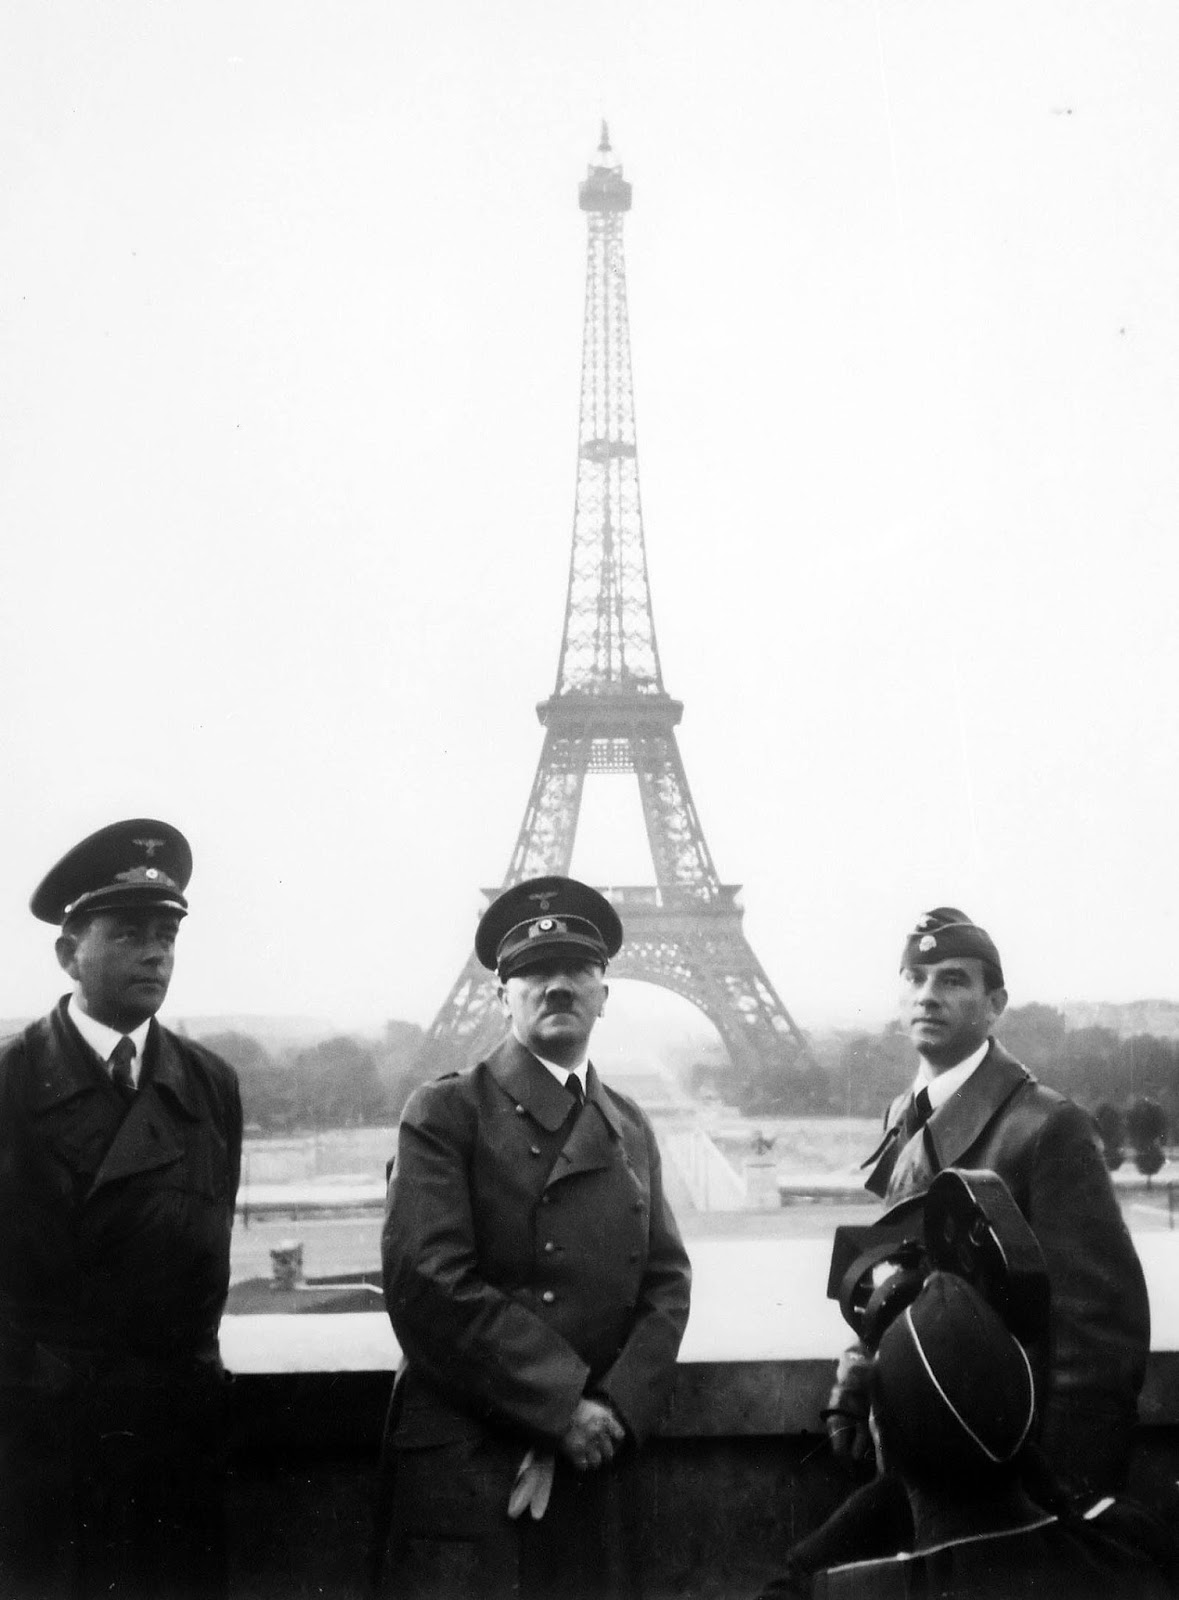 Adolf Hitler visits Paris with architect Albert Speer (left) and artist Arno Breker (right), June 23, 1940.